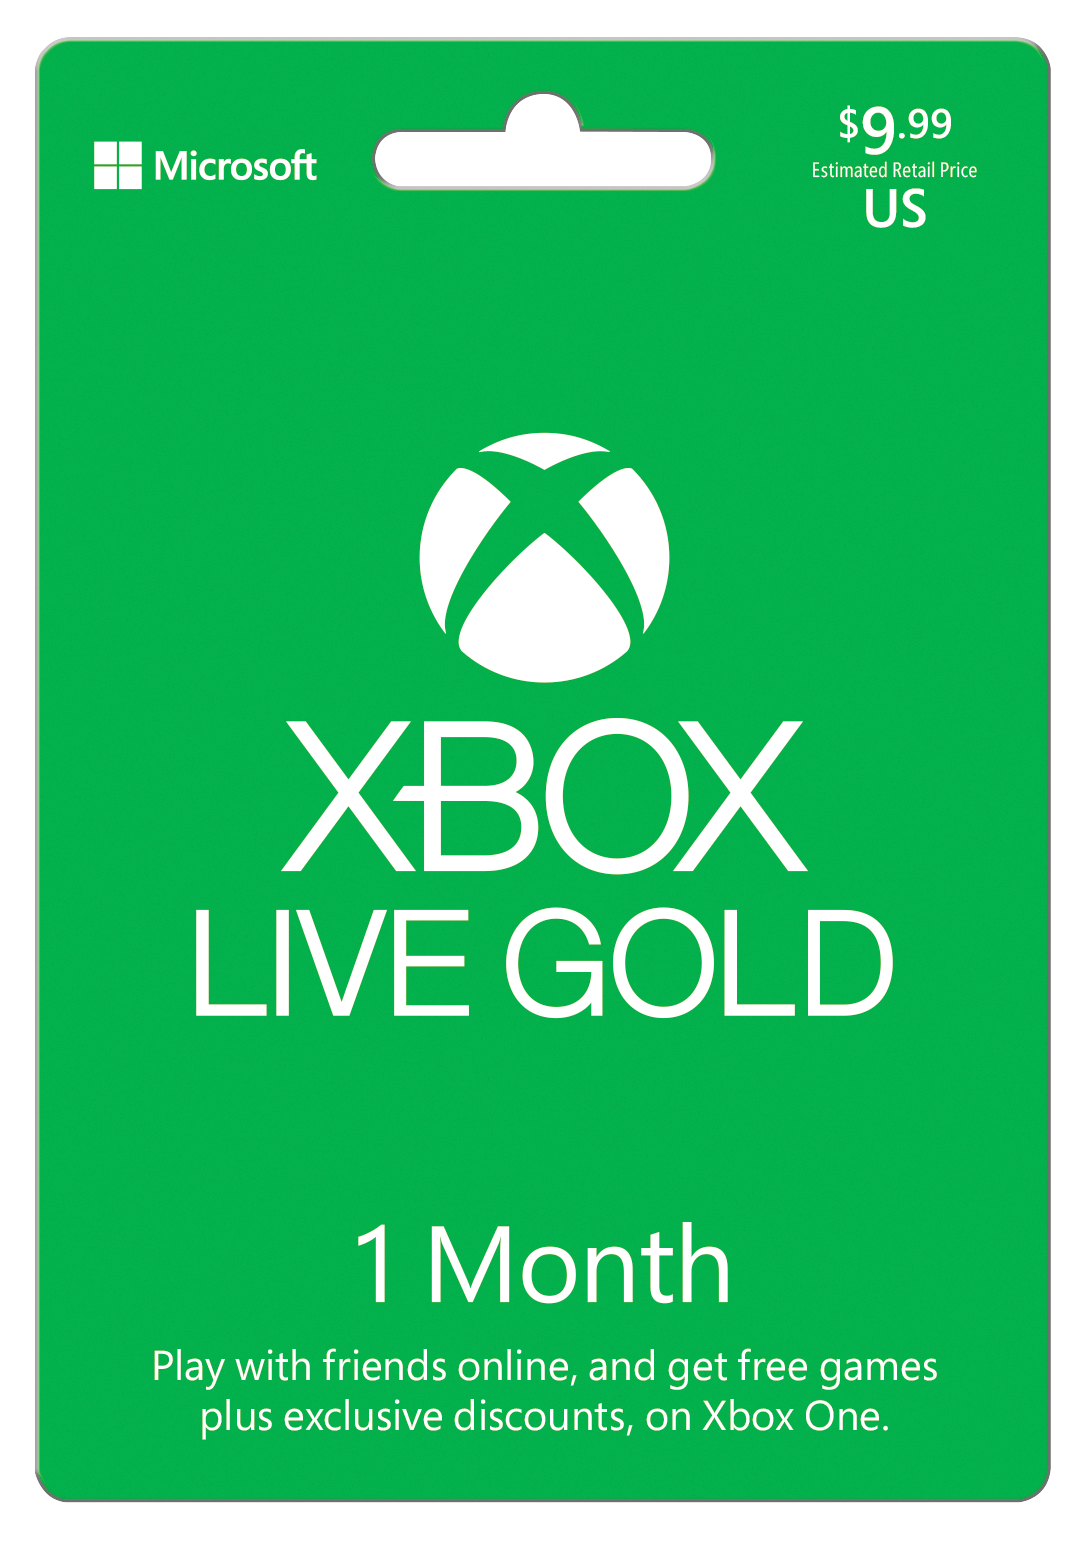 Xbox_Live_Gold_M6NS_1_Month_9_99_US_052119.png